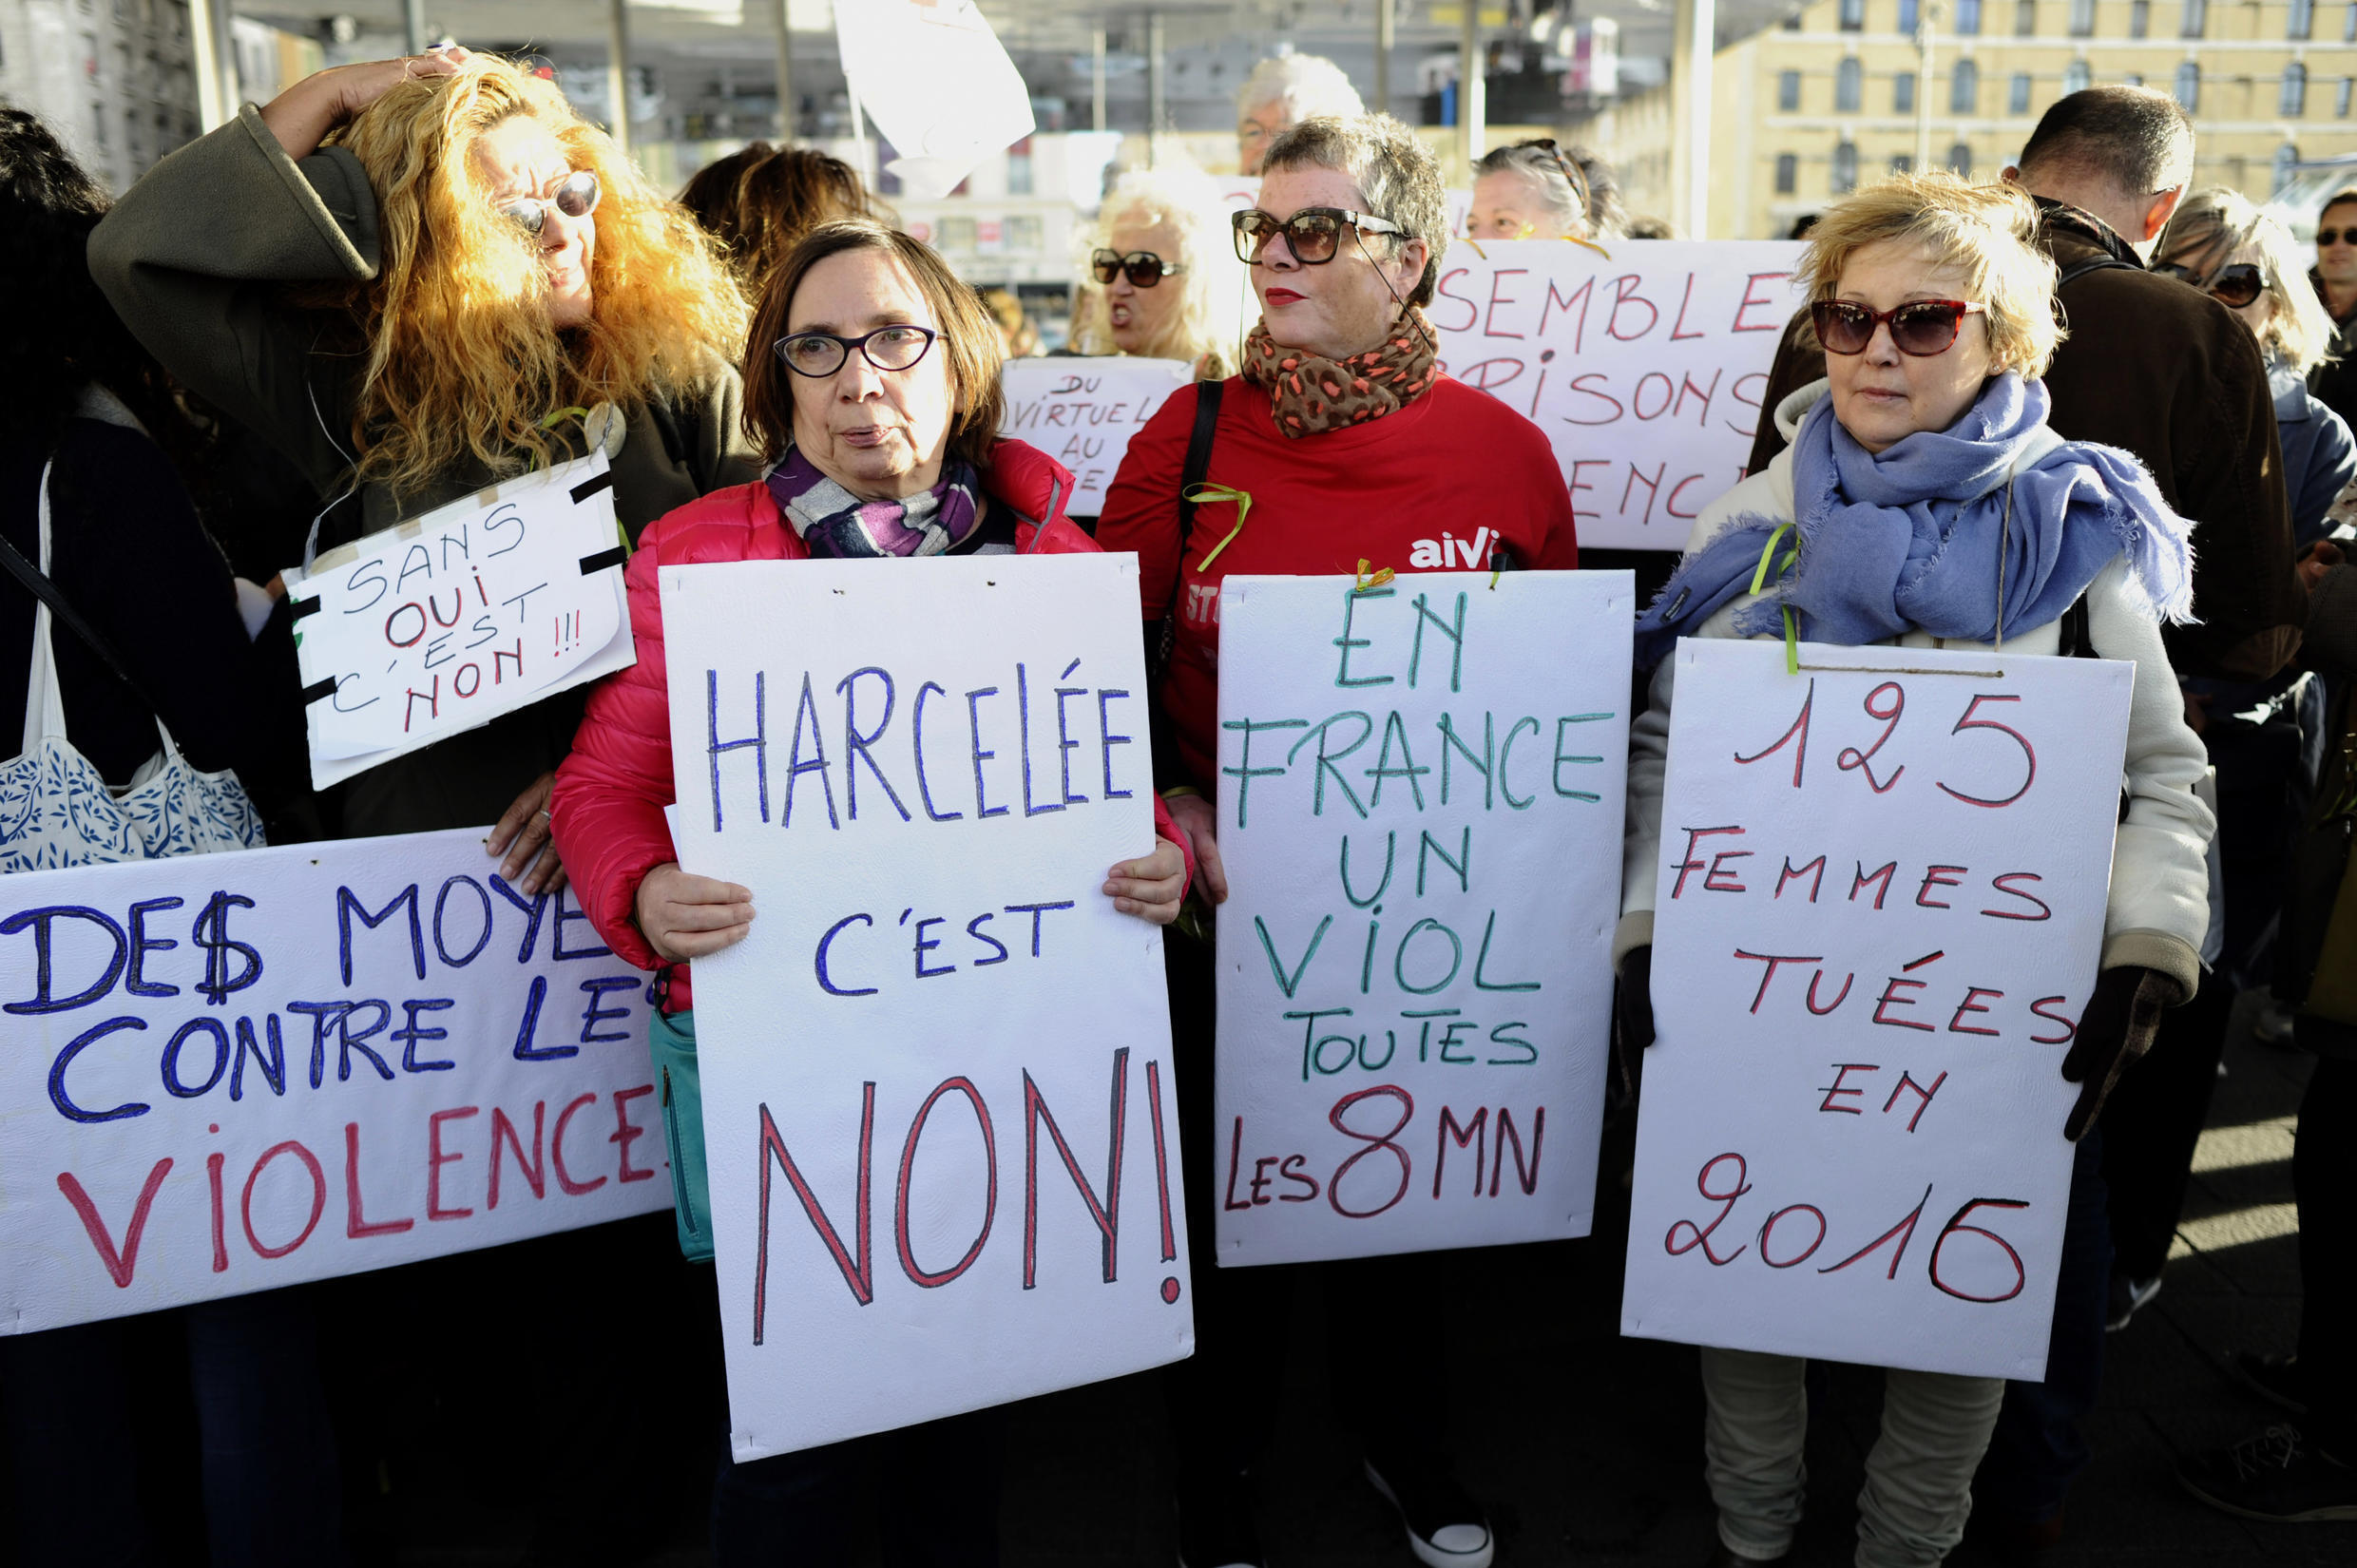 Women gather at the Old Port of Marseille, southern France, on October 29, 2017, to denounce harassment and the sexual violence in everyday life